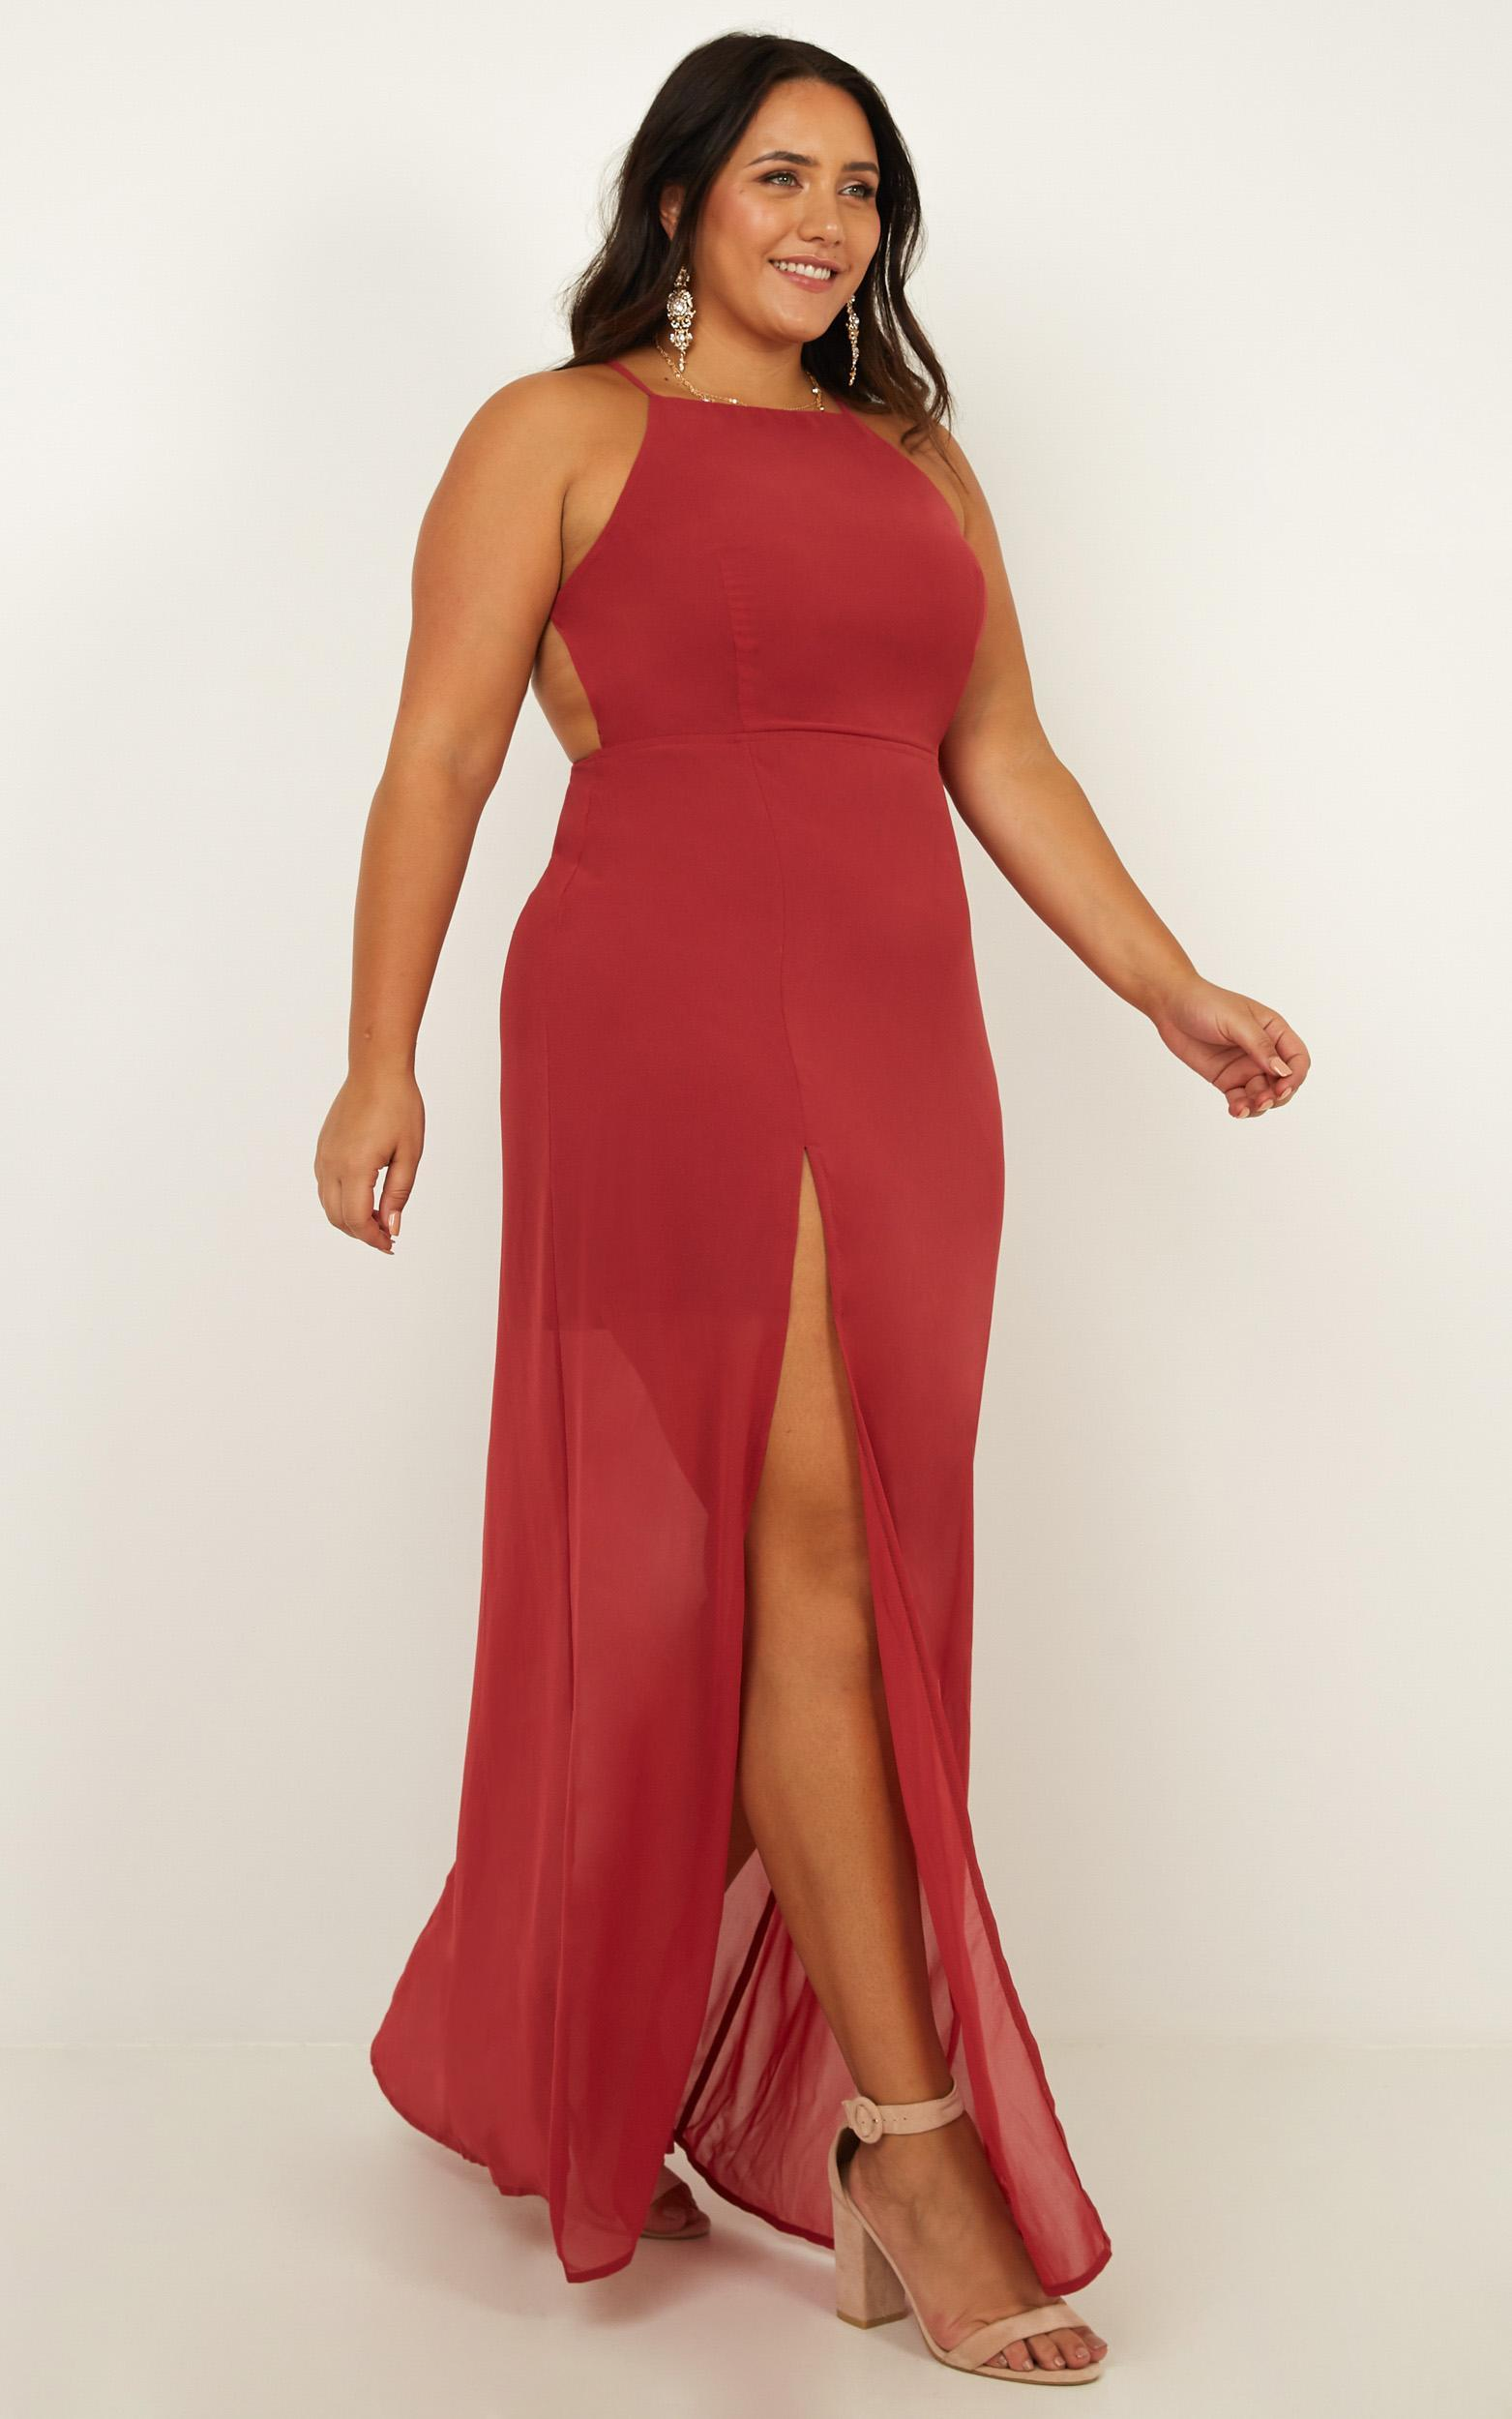 Night About You Dress in dusty rose - 20 (XXXXL), Pink, hi-res image number null